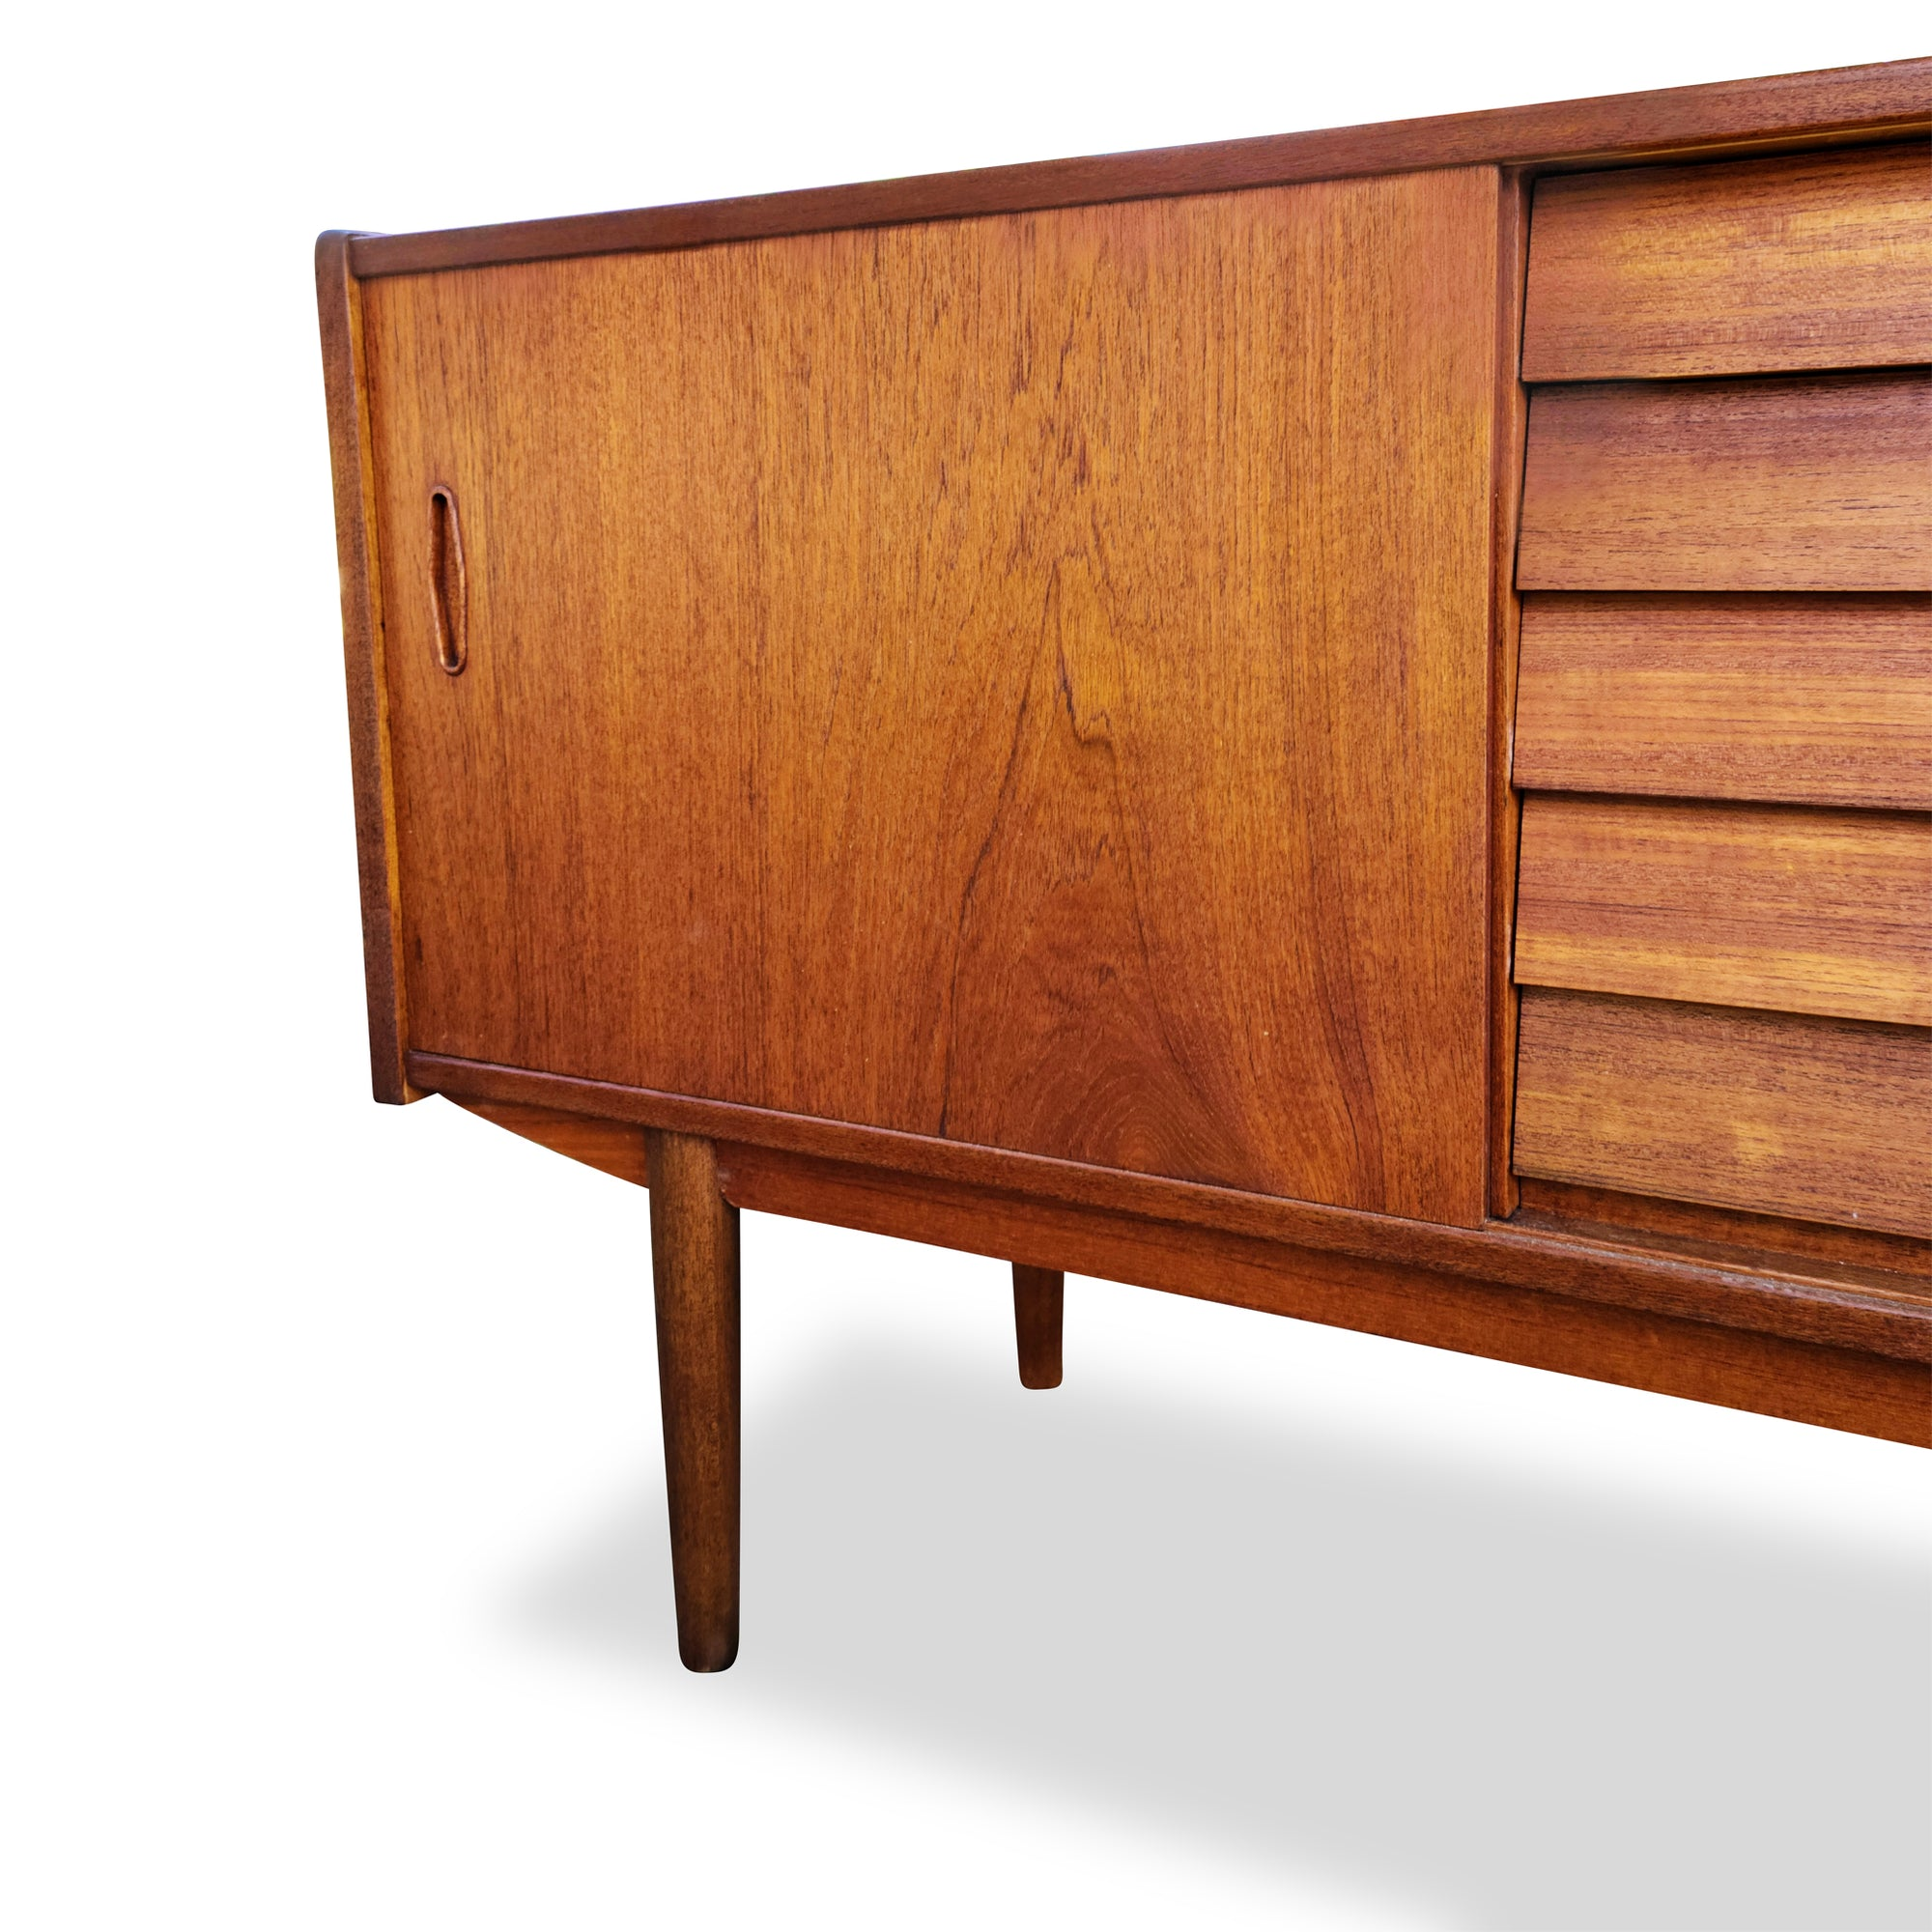 Teak Sideboard by Nils Jonsson for Troeds